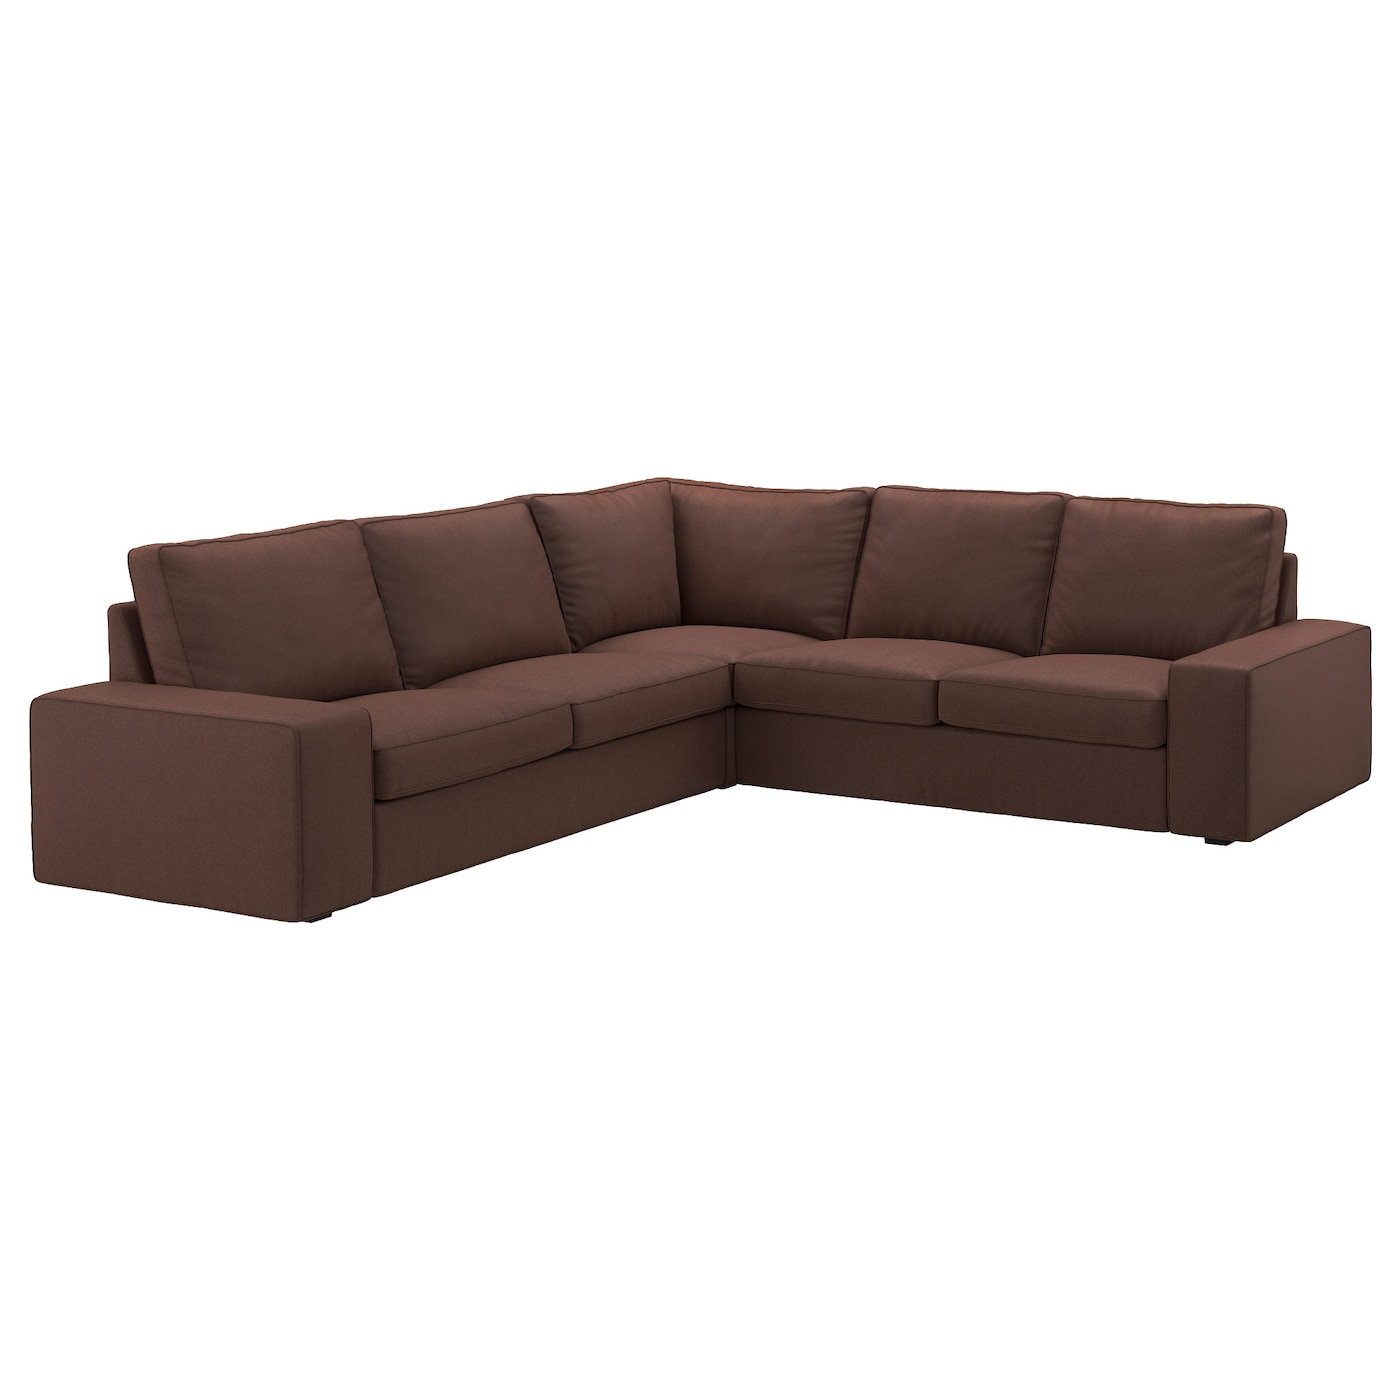 kivik corner sofa 4 seat borred dark brown ikea. Black Bedroom Furniture Sets. Home Design Ideas